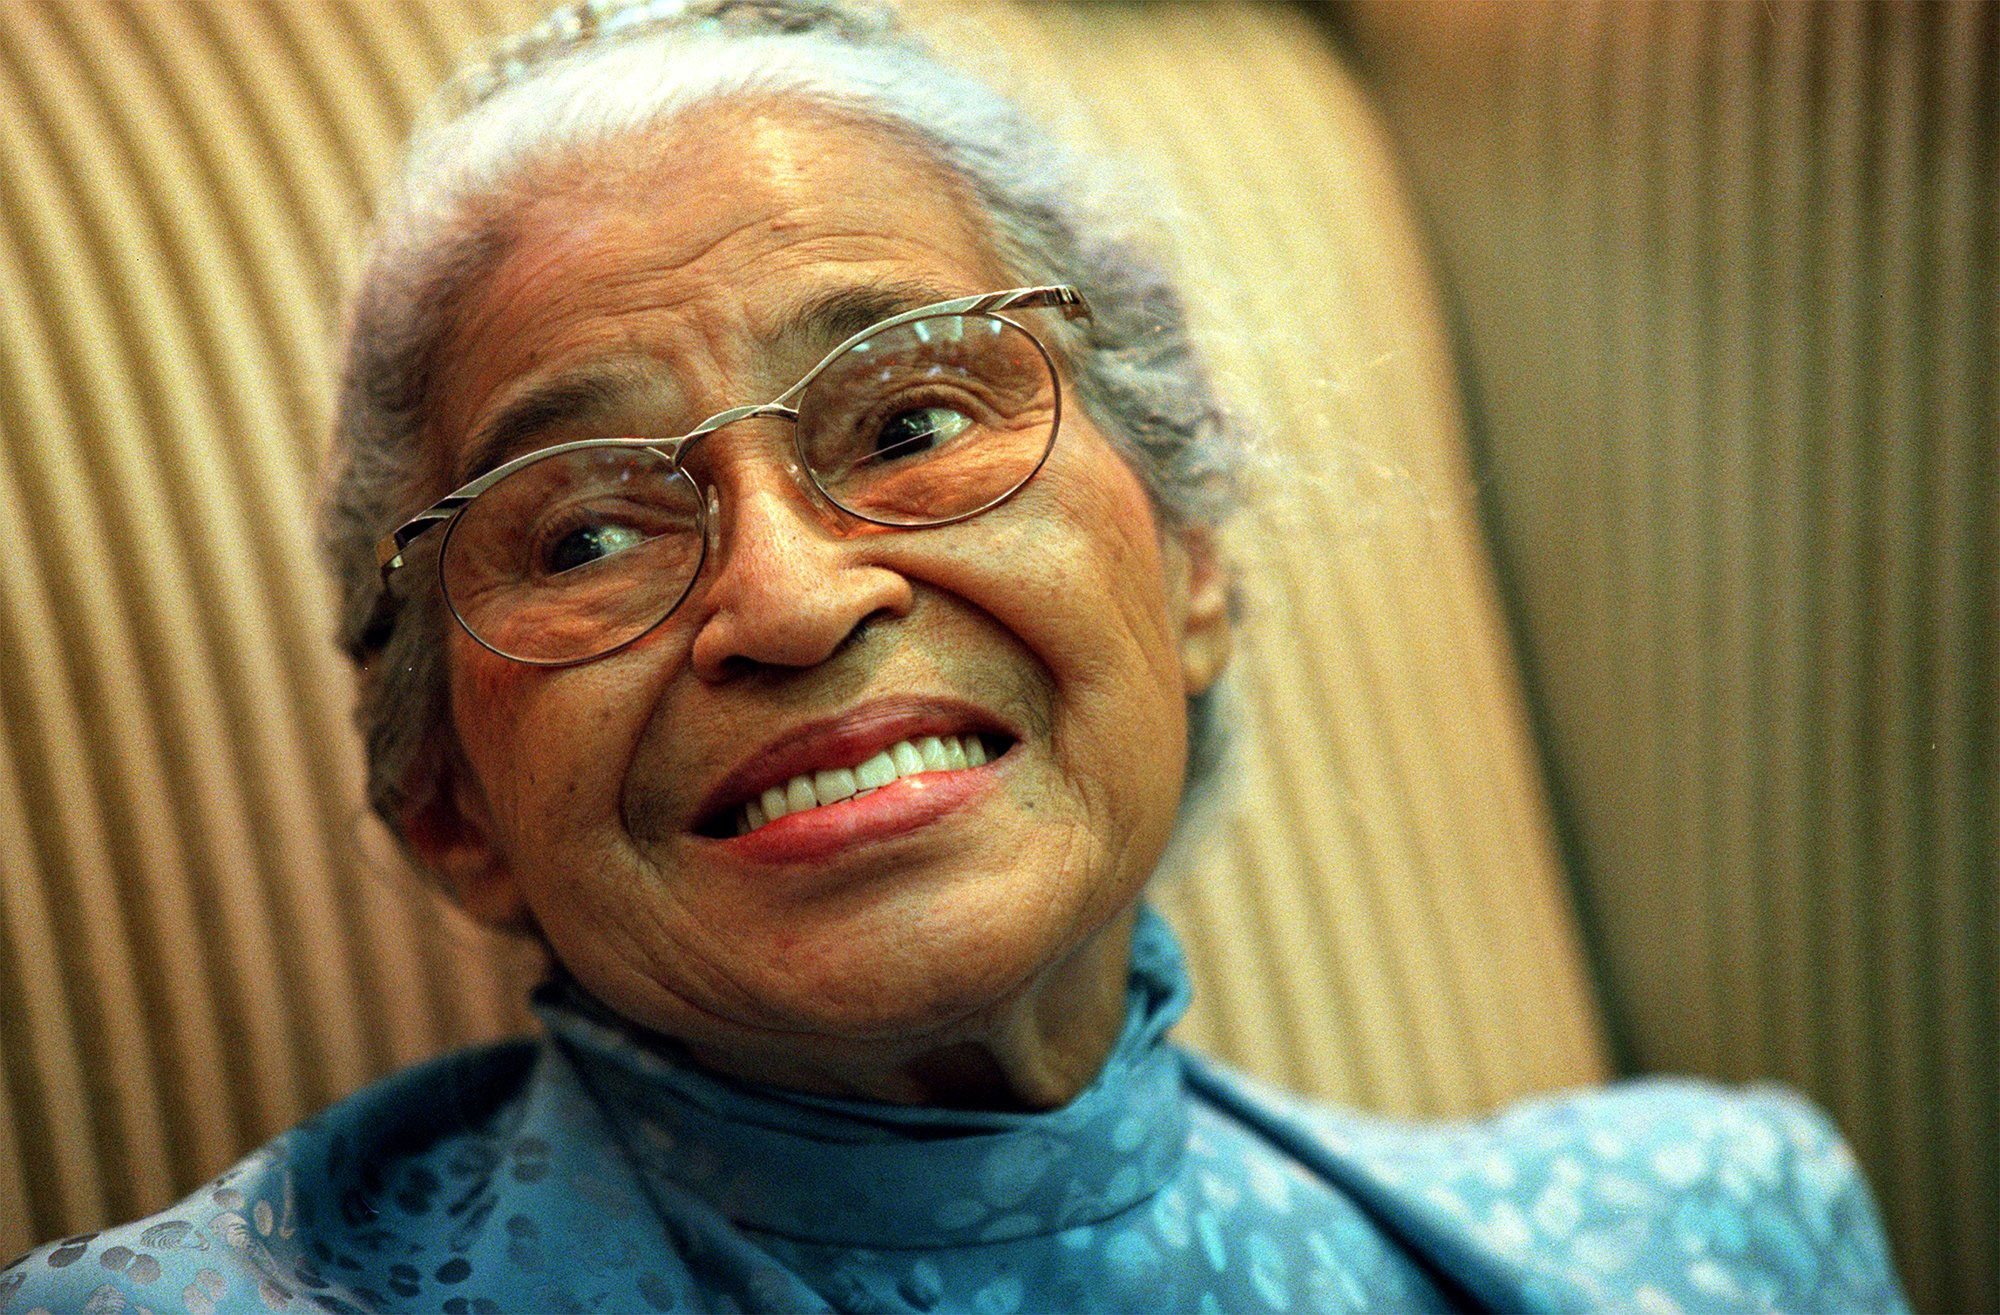 rosa parks and the hard cost of activism folks